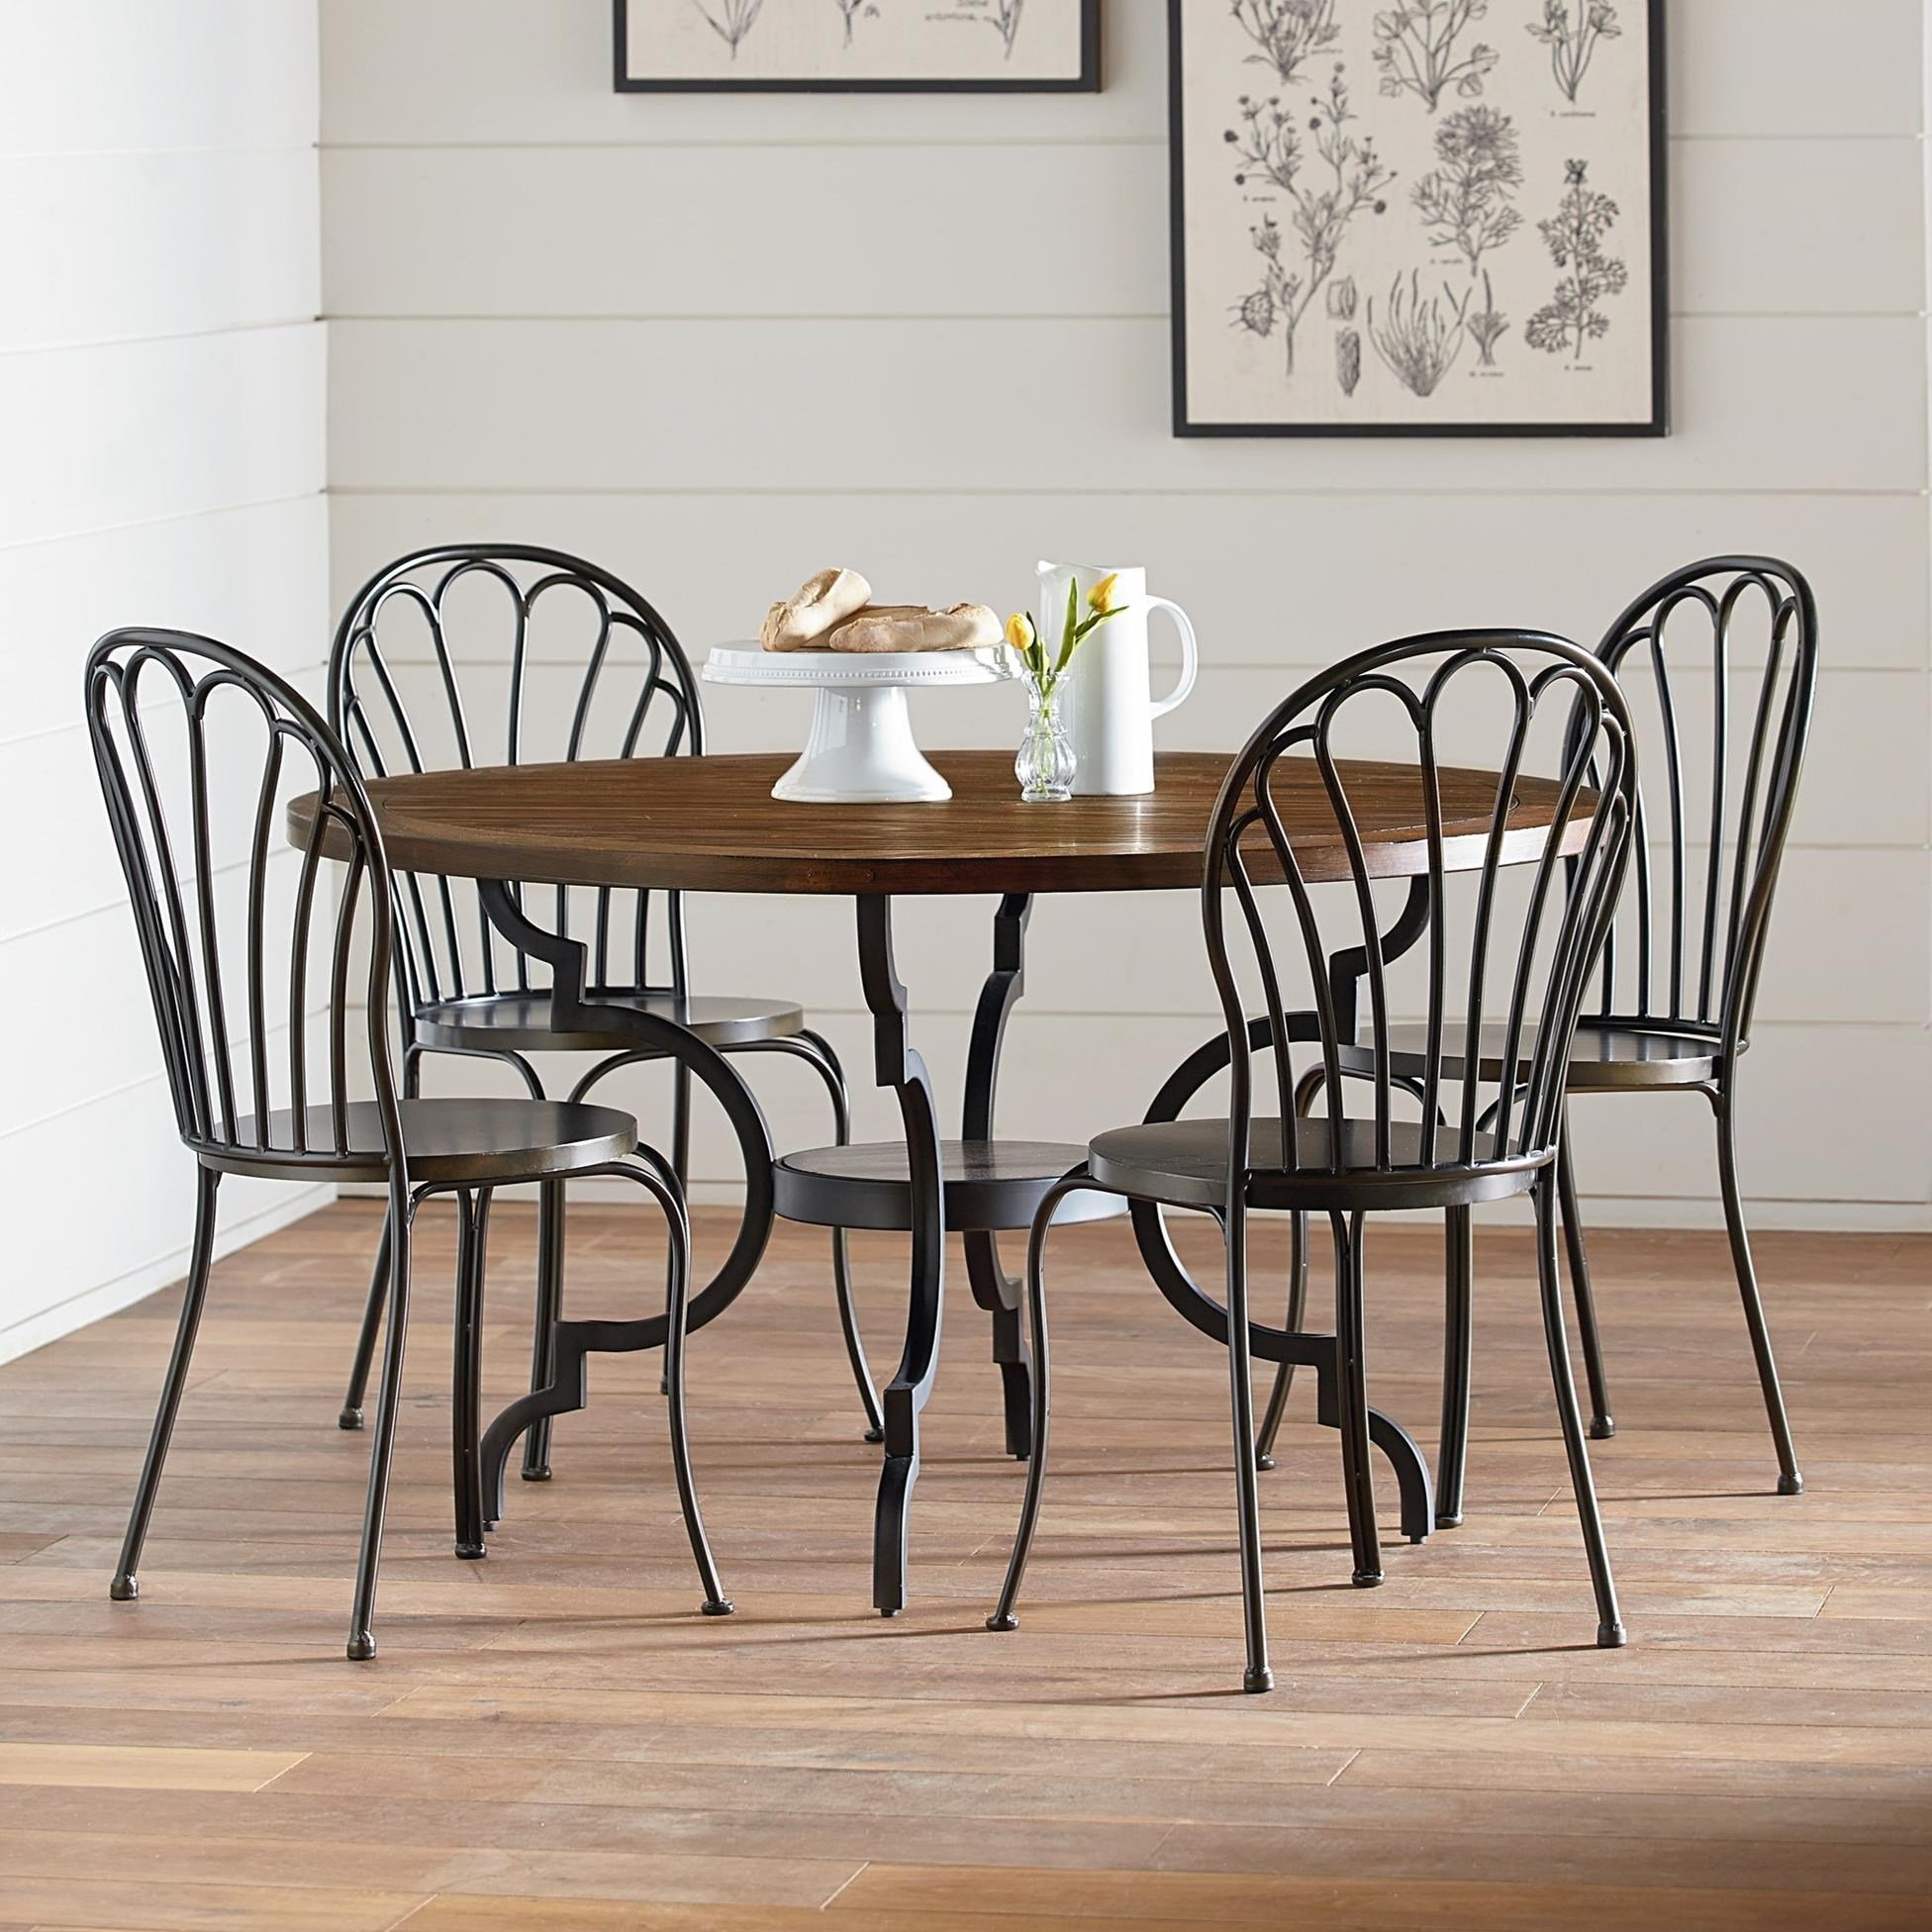 Magnolia Home By Joanna Gaines Primitive 5 Piece Round Table U0026 Chair Set    Item Number